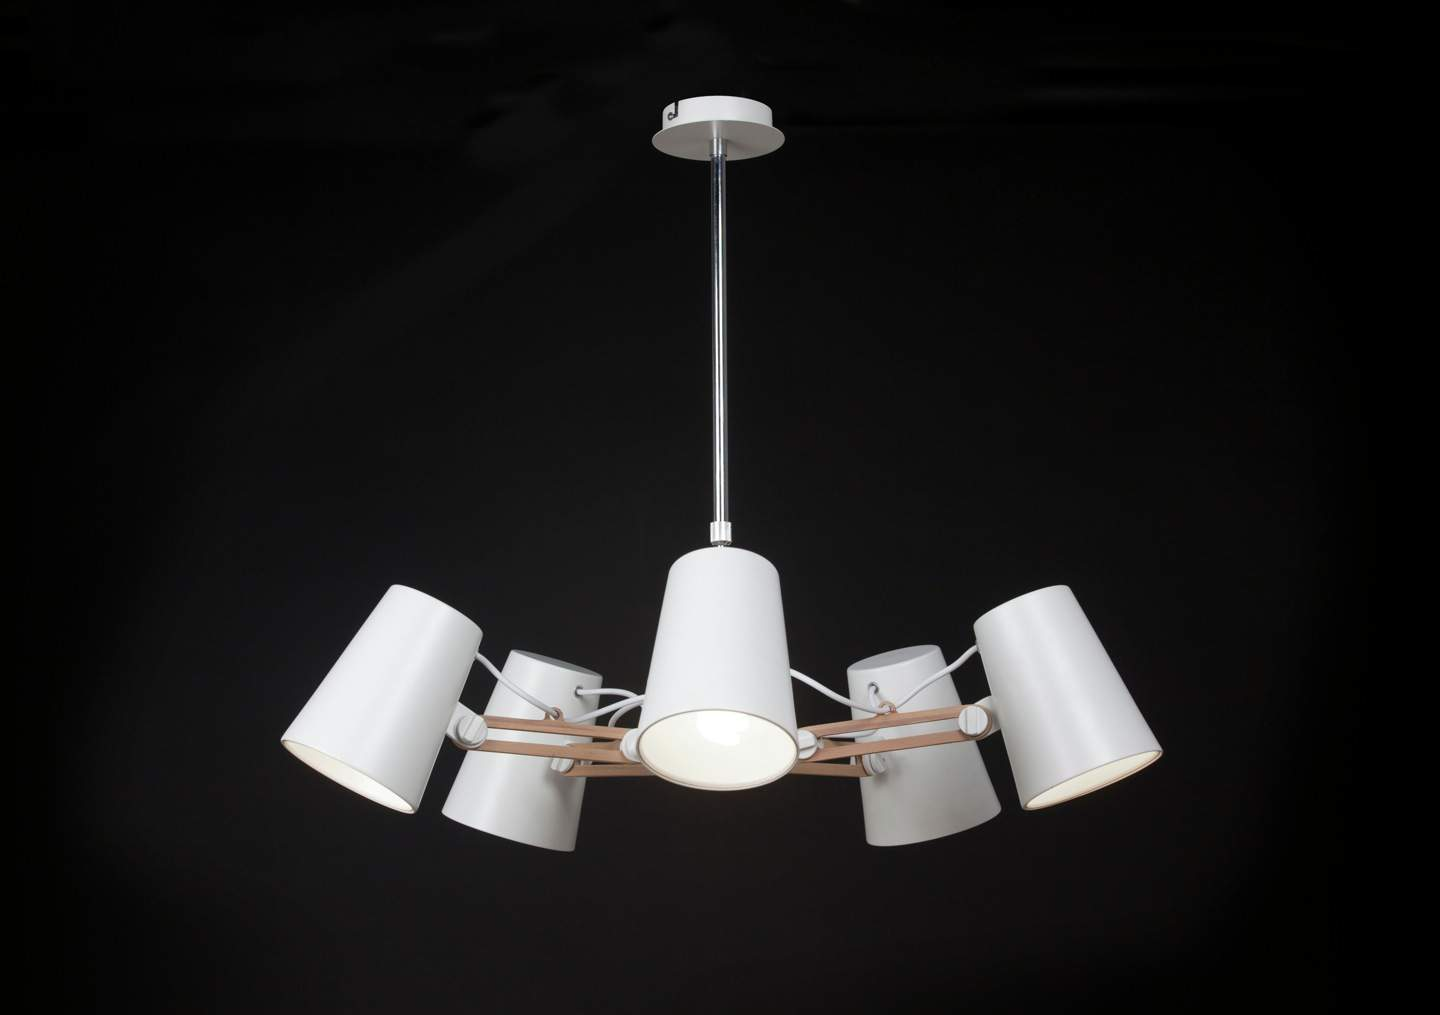 Looker Pendant Lamp 5L 5x15w E27 white/Wood/metal